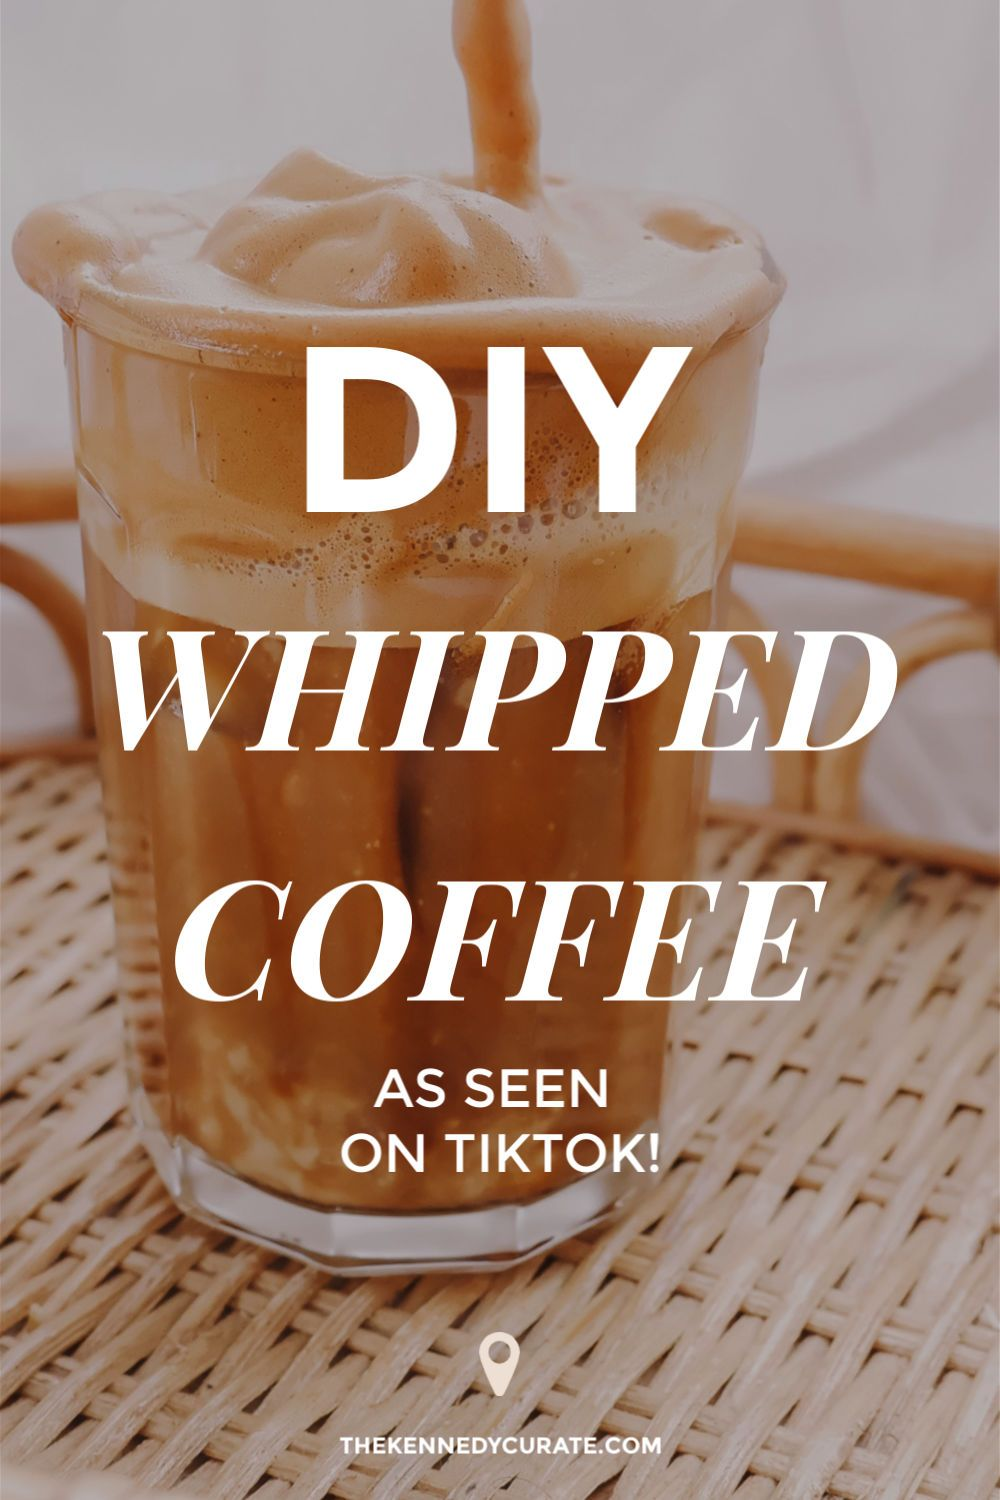 How to make the whipped coffee youre seeing on social